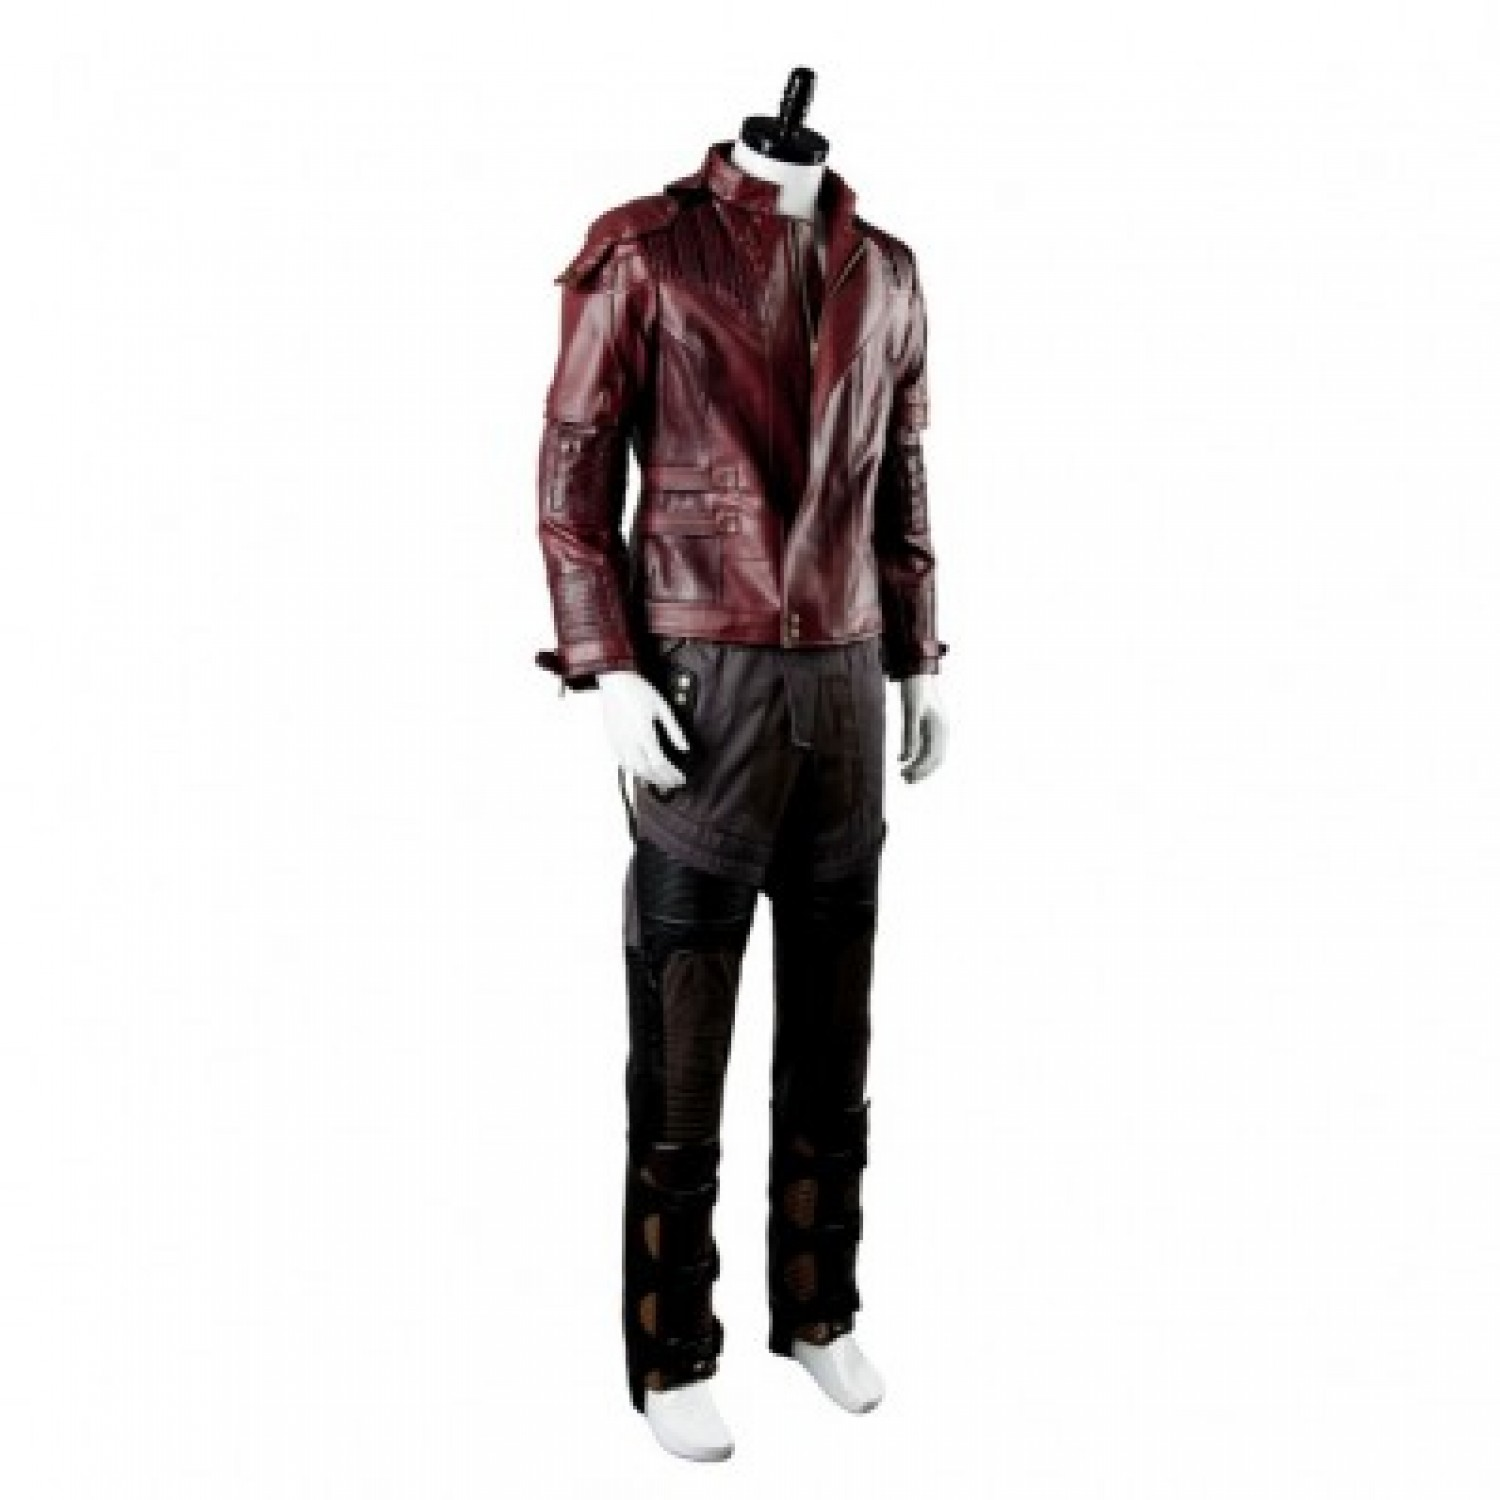 Guardians Of The Galaxy Peter Quill Star-Lord Pu Cosplay Costumes